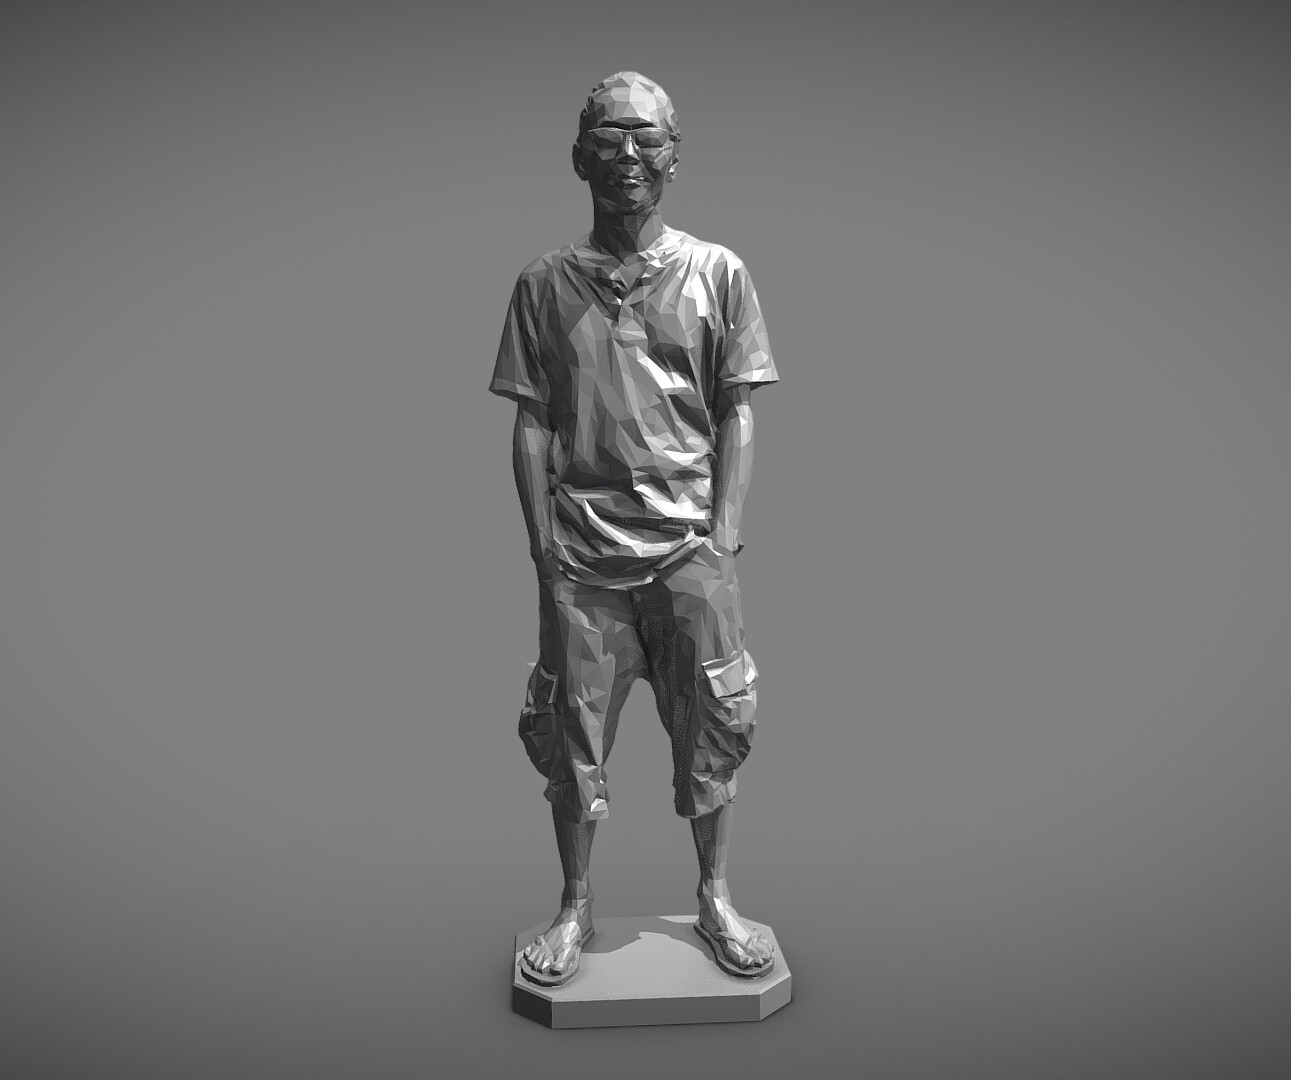 Michael wu mw 3d printing test low downlox free 3d model by mwopus mwopus sketchfab20190320 007949